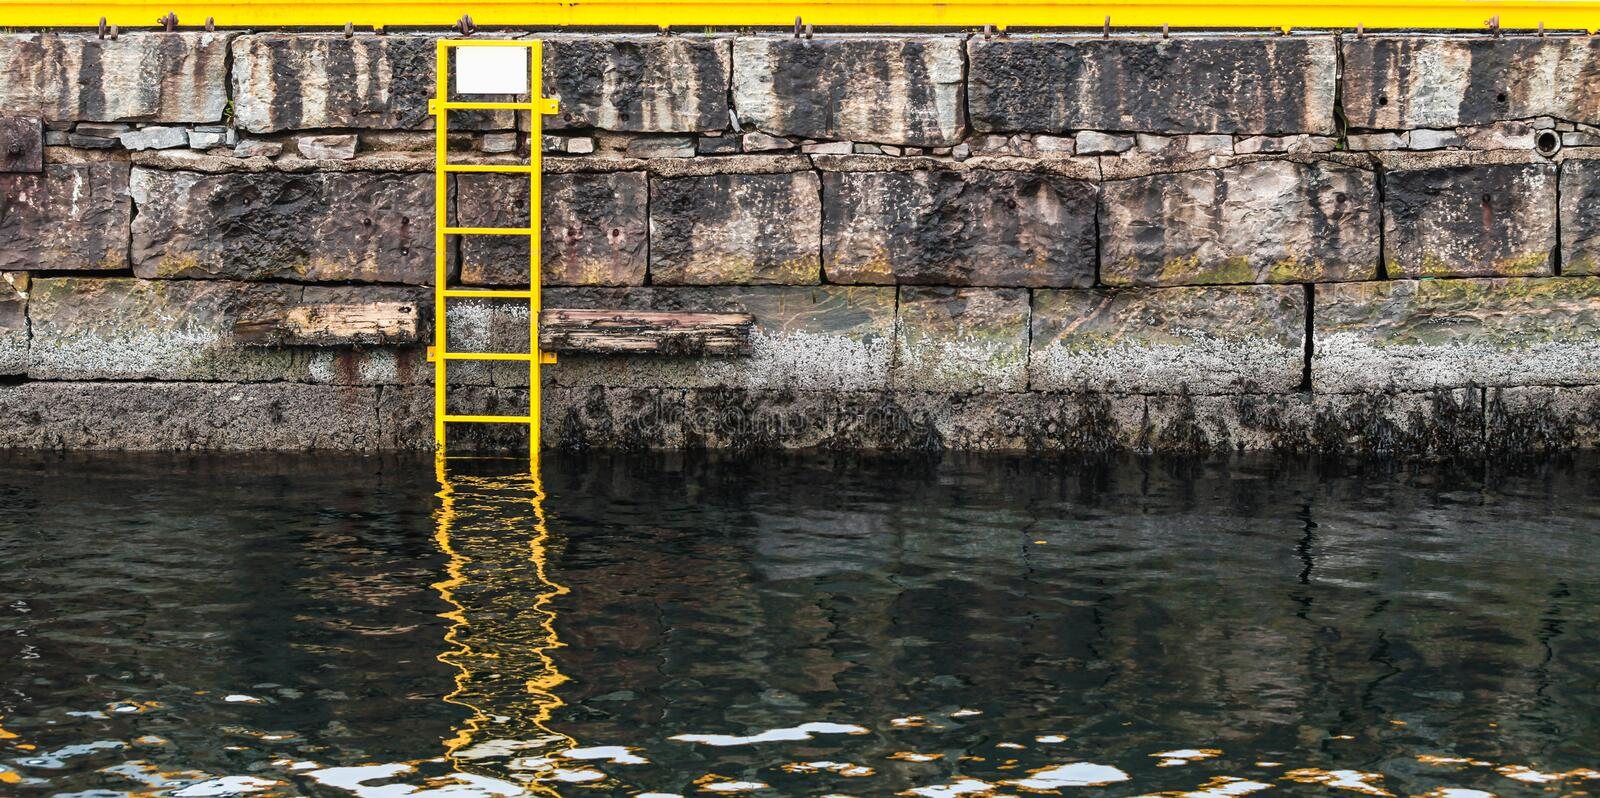 Grungy mooring wall and sea water, stone pier. With yellow ladder, background photo stock image